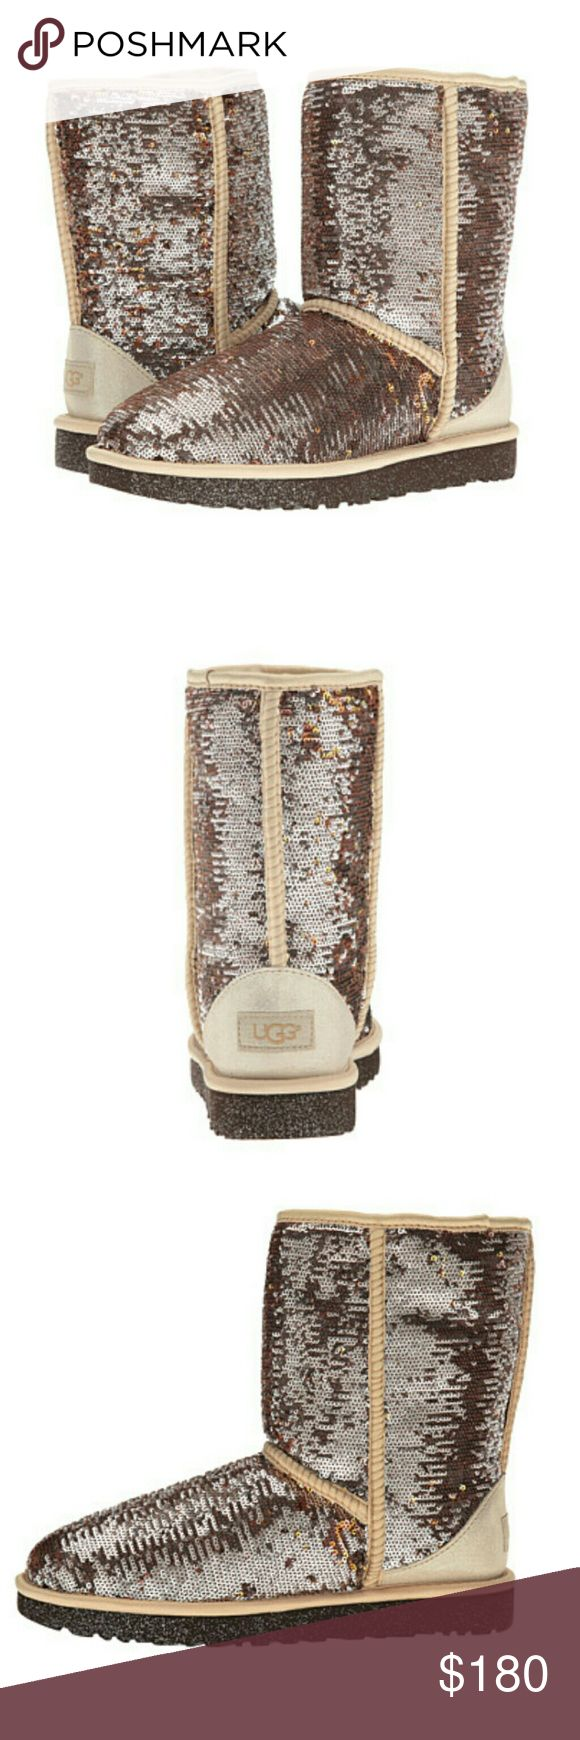 NEW UGG Boots ' Classic Short Sparkles ' BRAND NEW 100% authentic pair of ' Classic Short Champagne Sparkles UGG boots.  I have sizes 5 6 7 and 8 in womens.  They are both brand new and come with the original box, wrapping paper and authenticity cards! Originally 180$.   If you have any questions please let me know thank you!     tags: boots boot bootie uggs Australia butte warm shoes youth kids 5.5 6.5 7.5 marmot adidas Canada goose Northface nike warm weather woman UGG Shoes Winter & Rain…